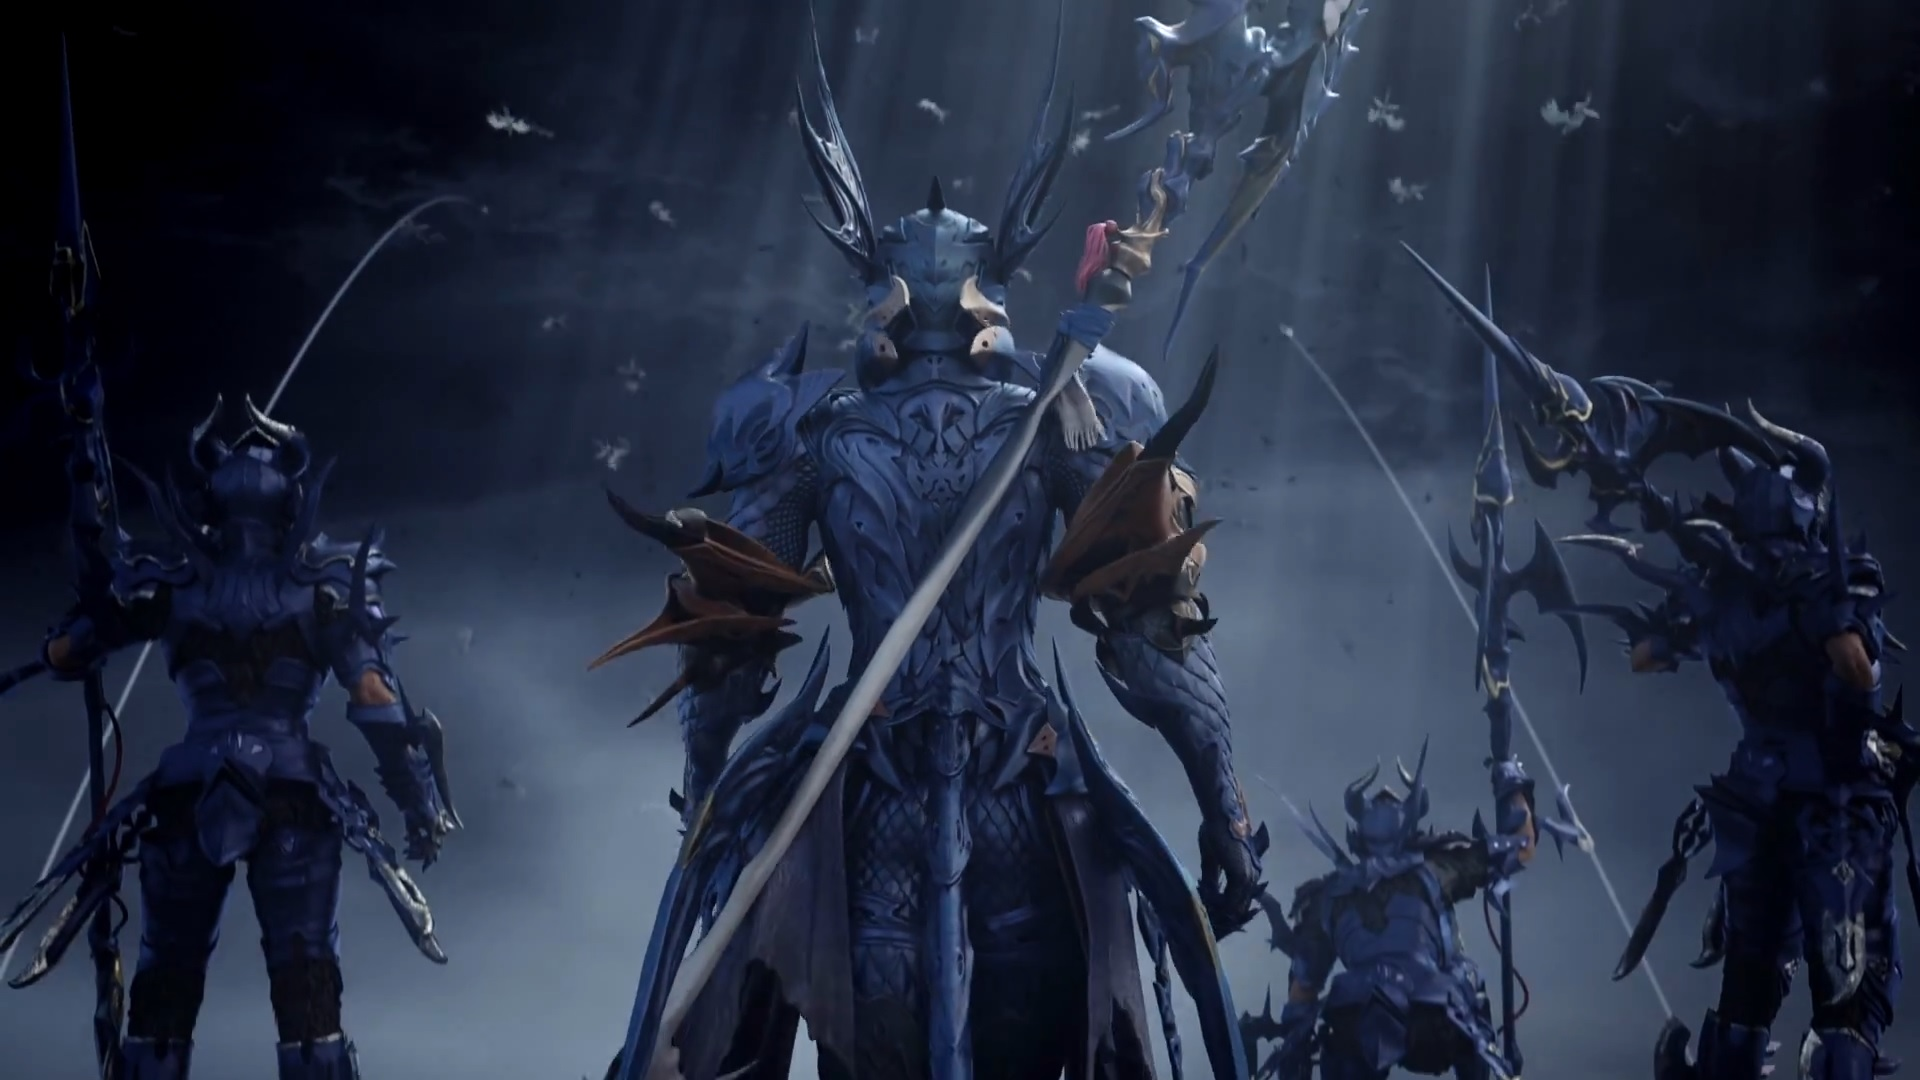 square pulls mac version of final fantasy xiv from stores